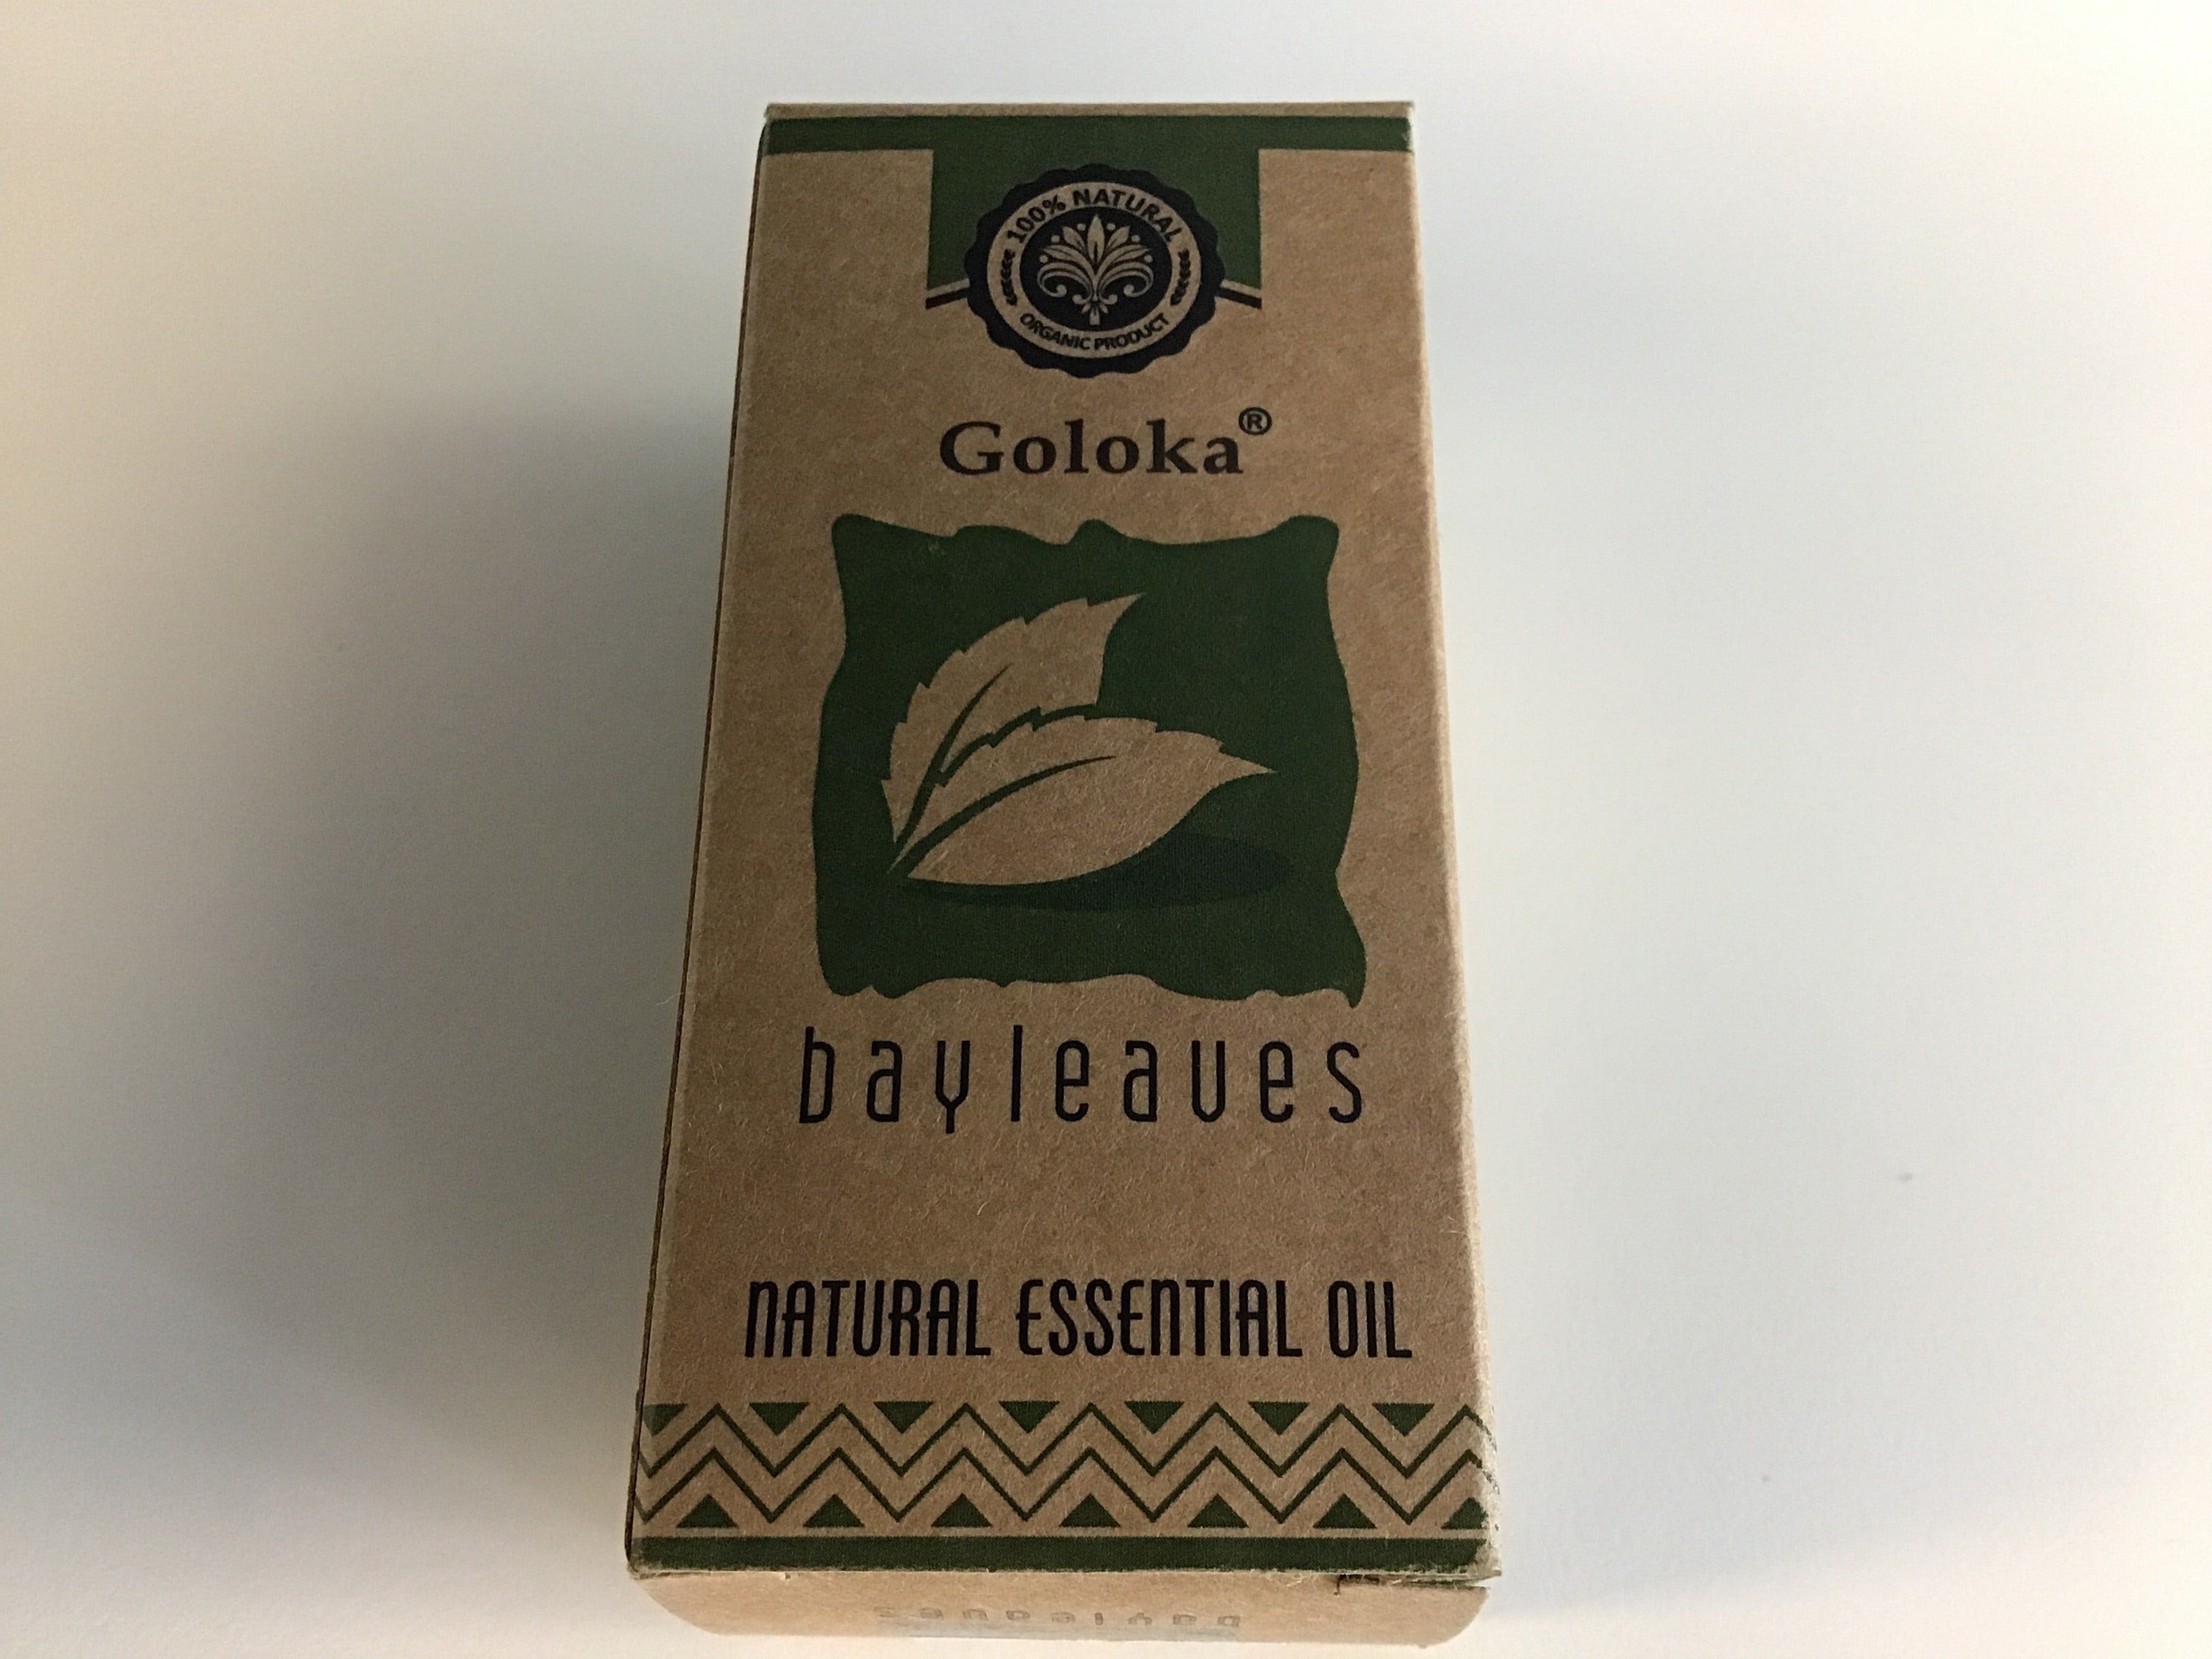 Goloka Essential Oil - Bayleaves